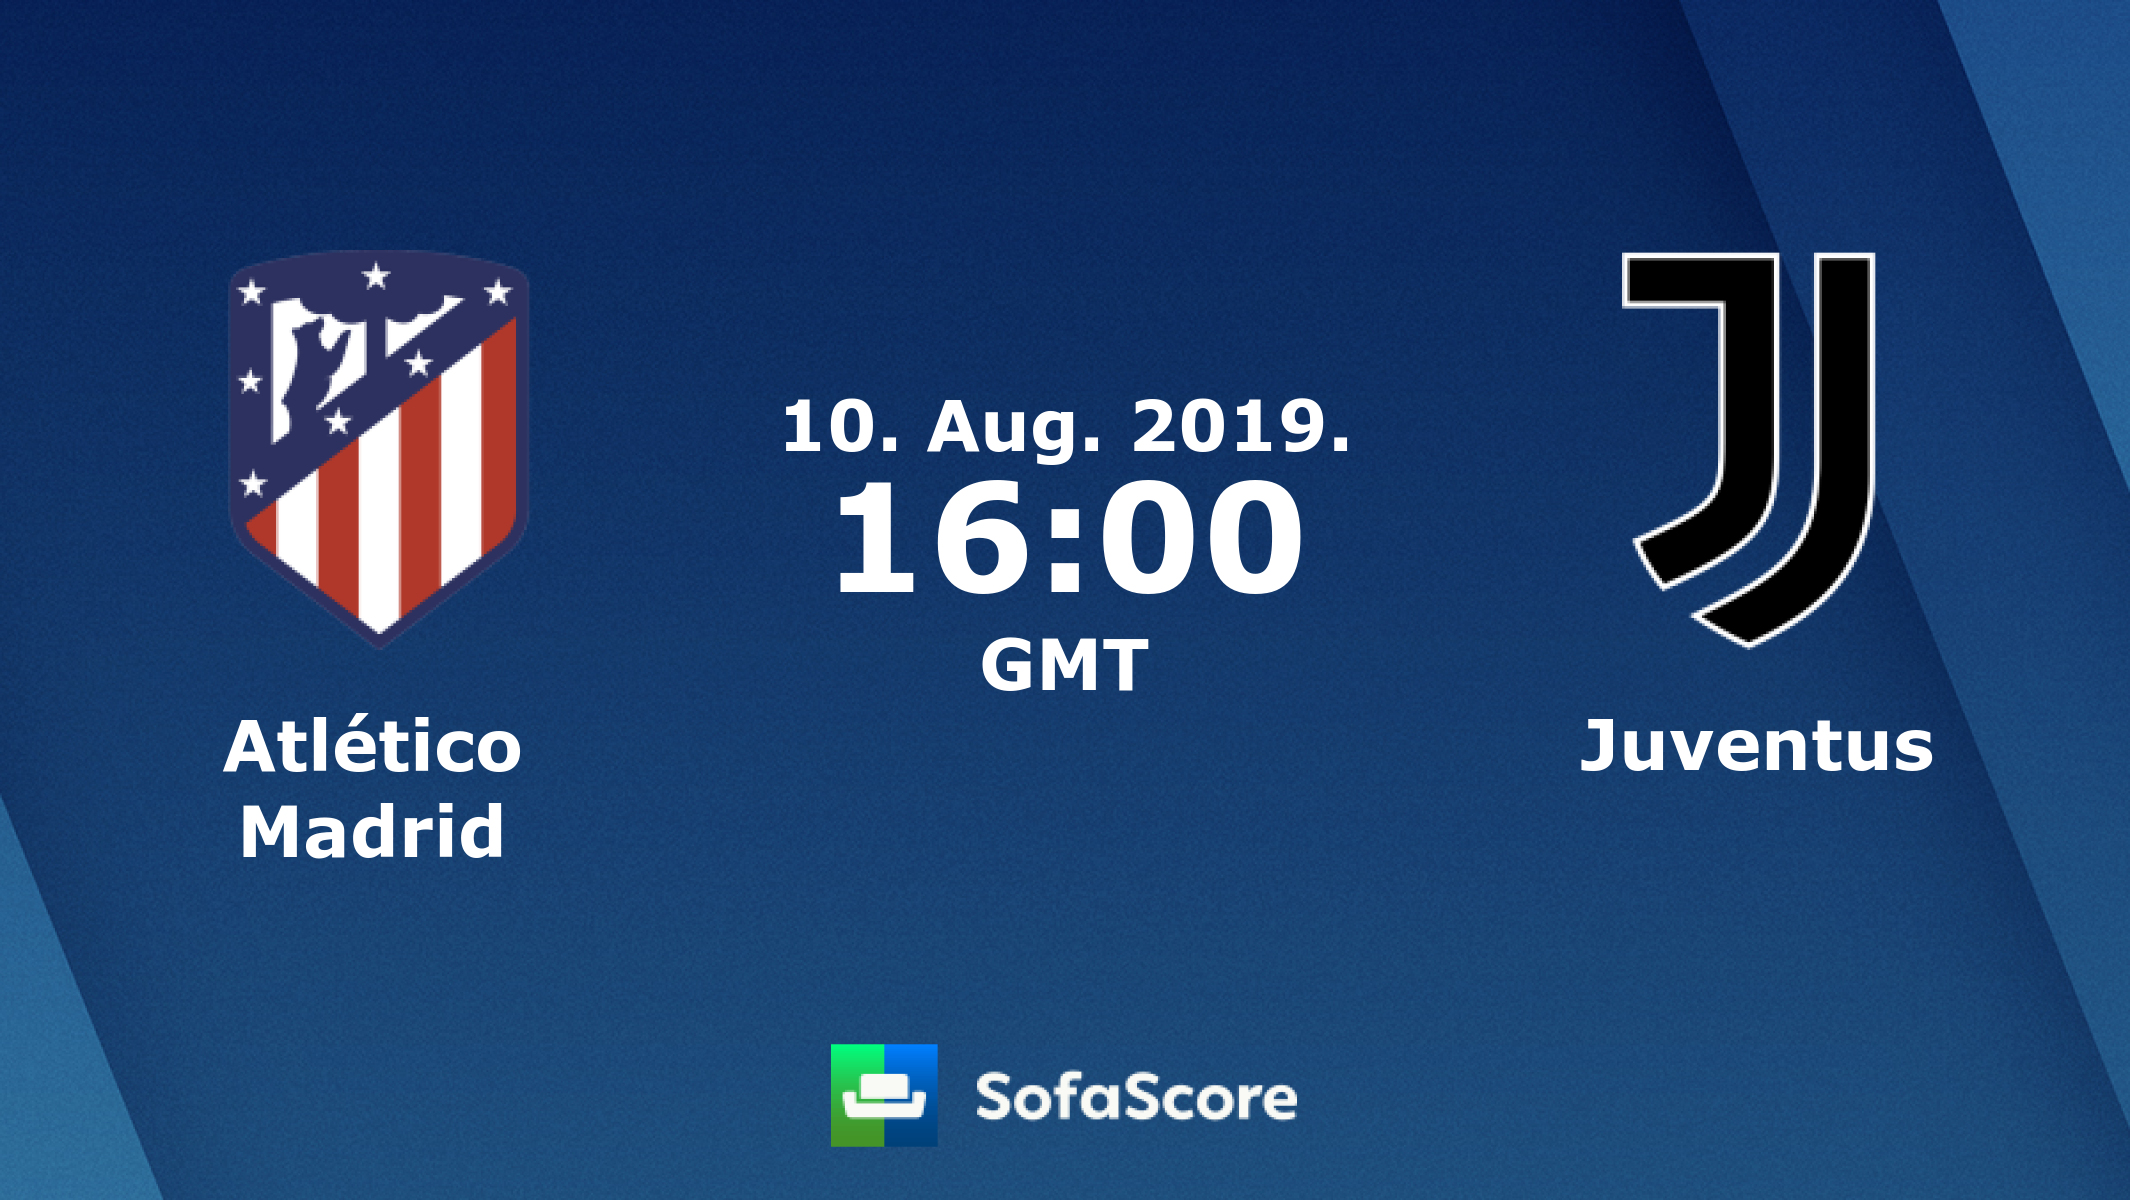 Atlético Madrid Juventus live score, video stream and H2H results